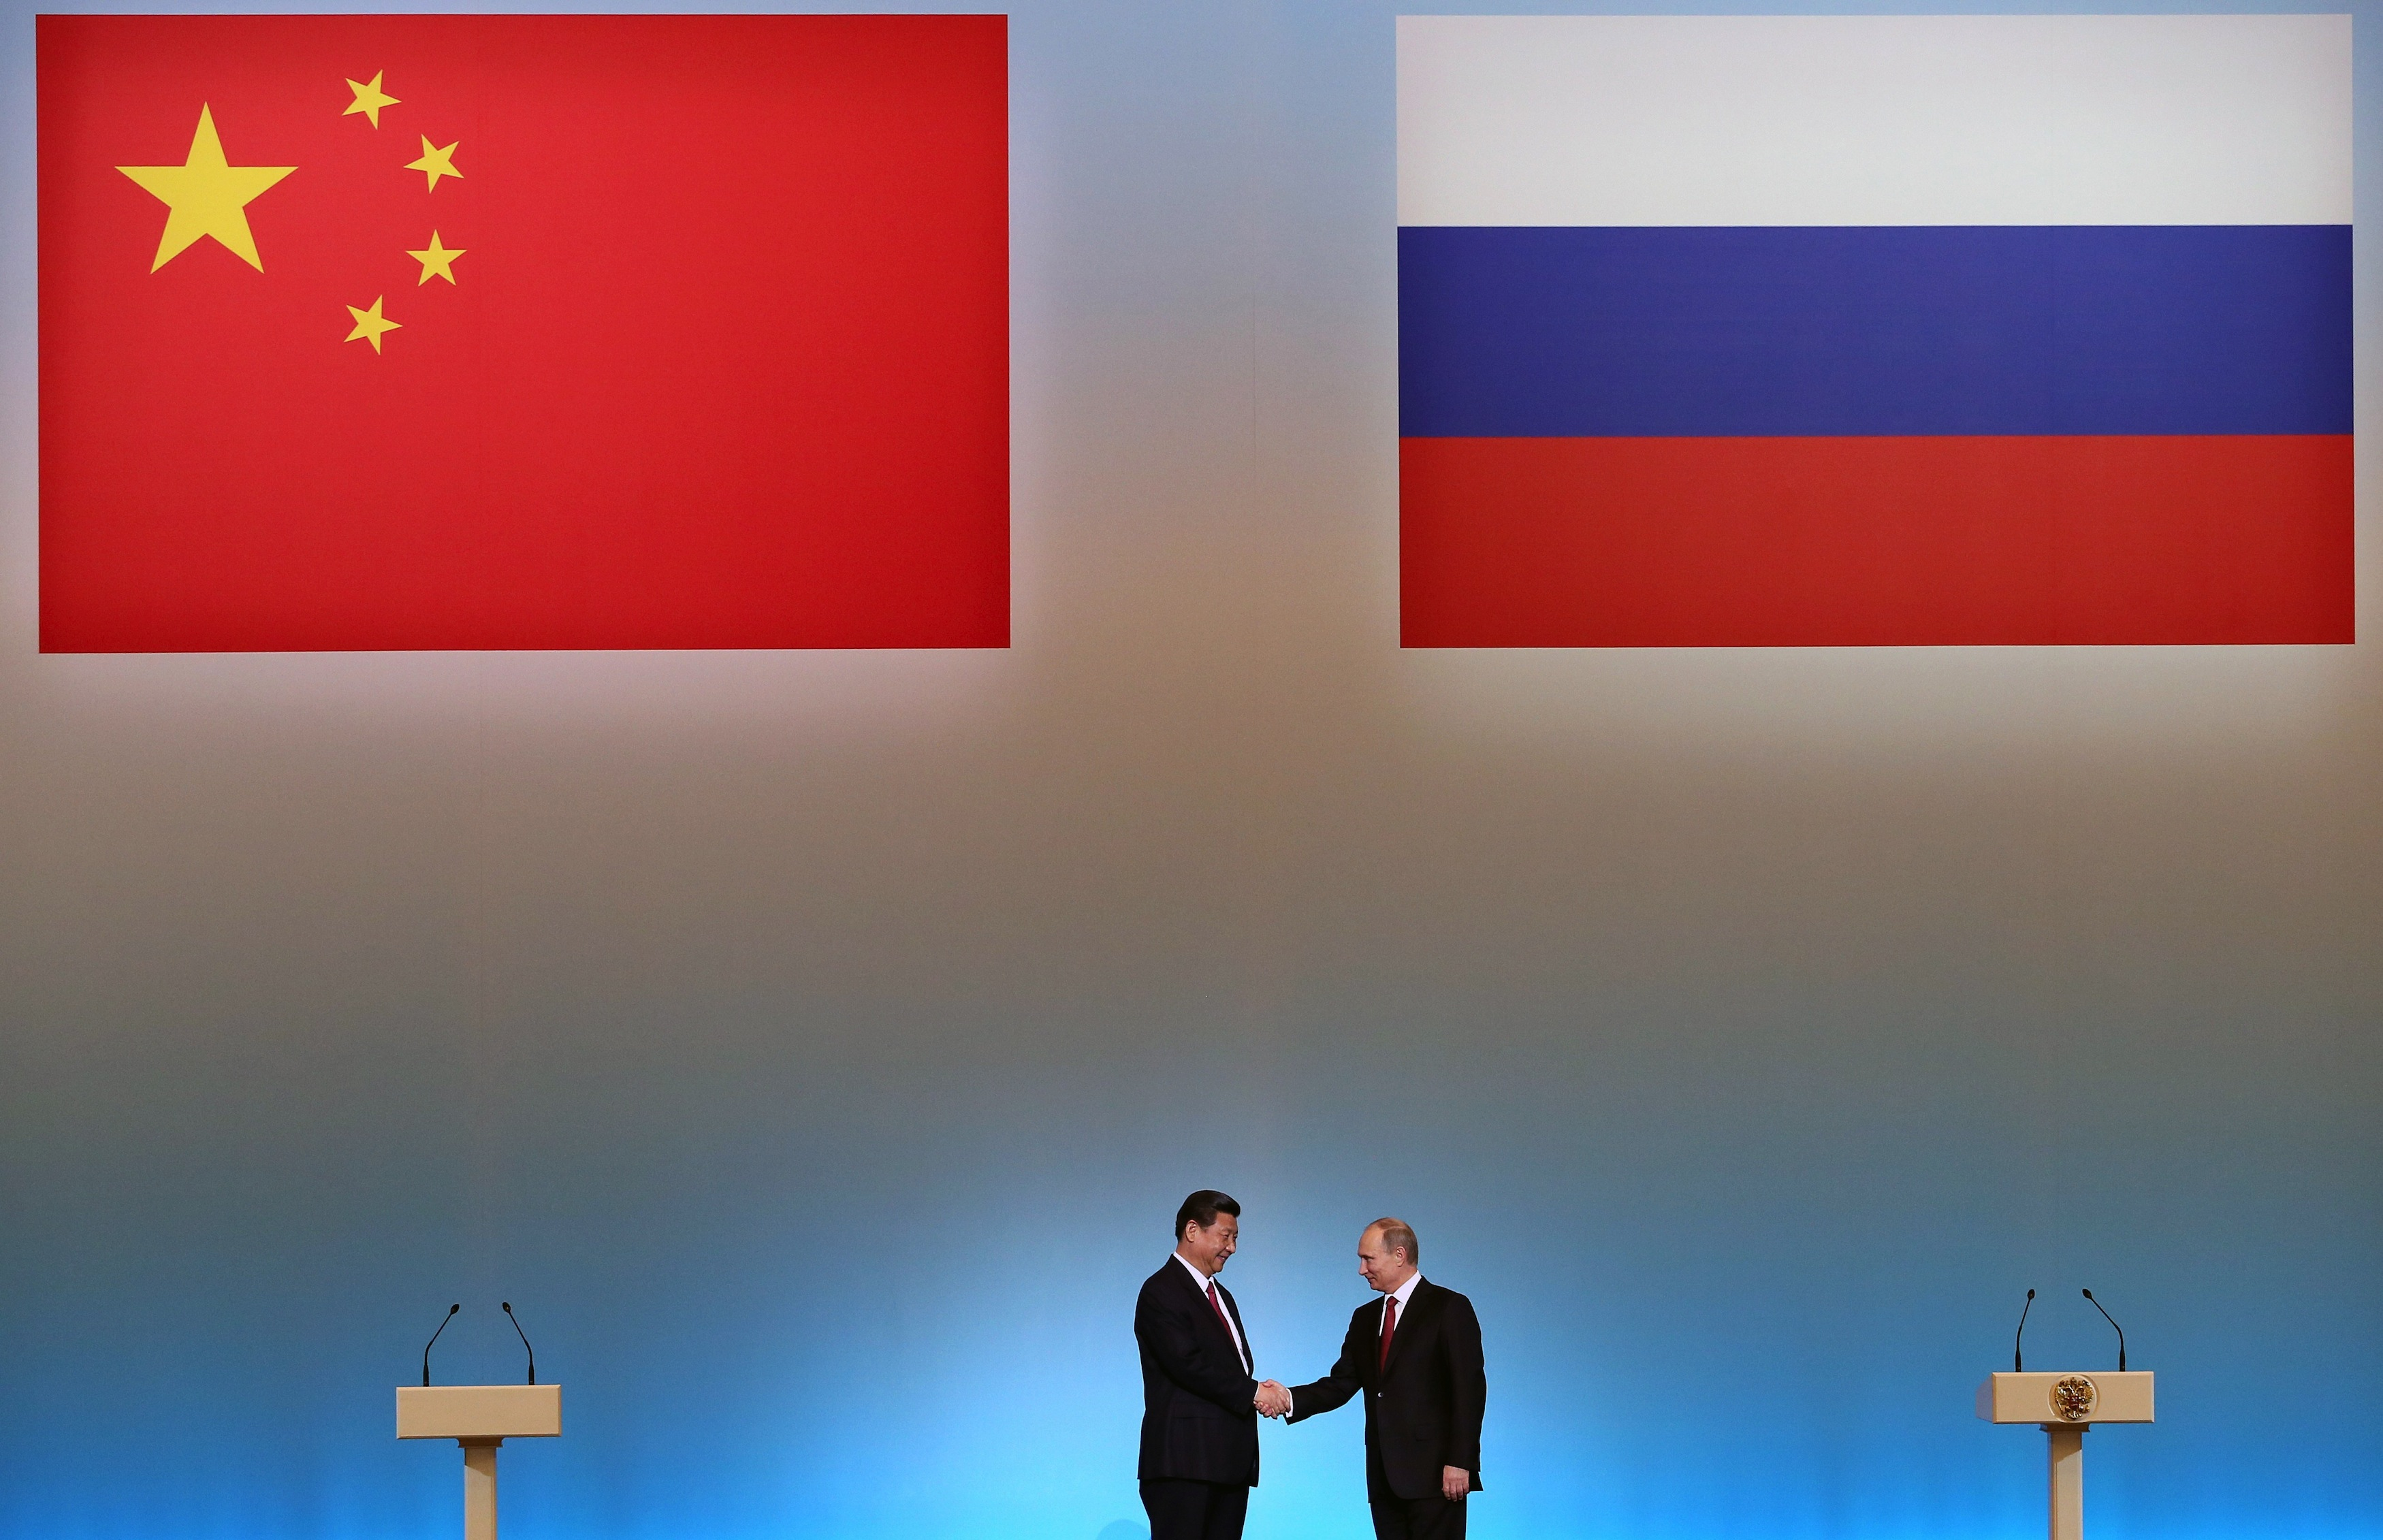 Russia, China, others snub UN meeting on Crimea human rights